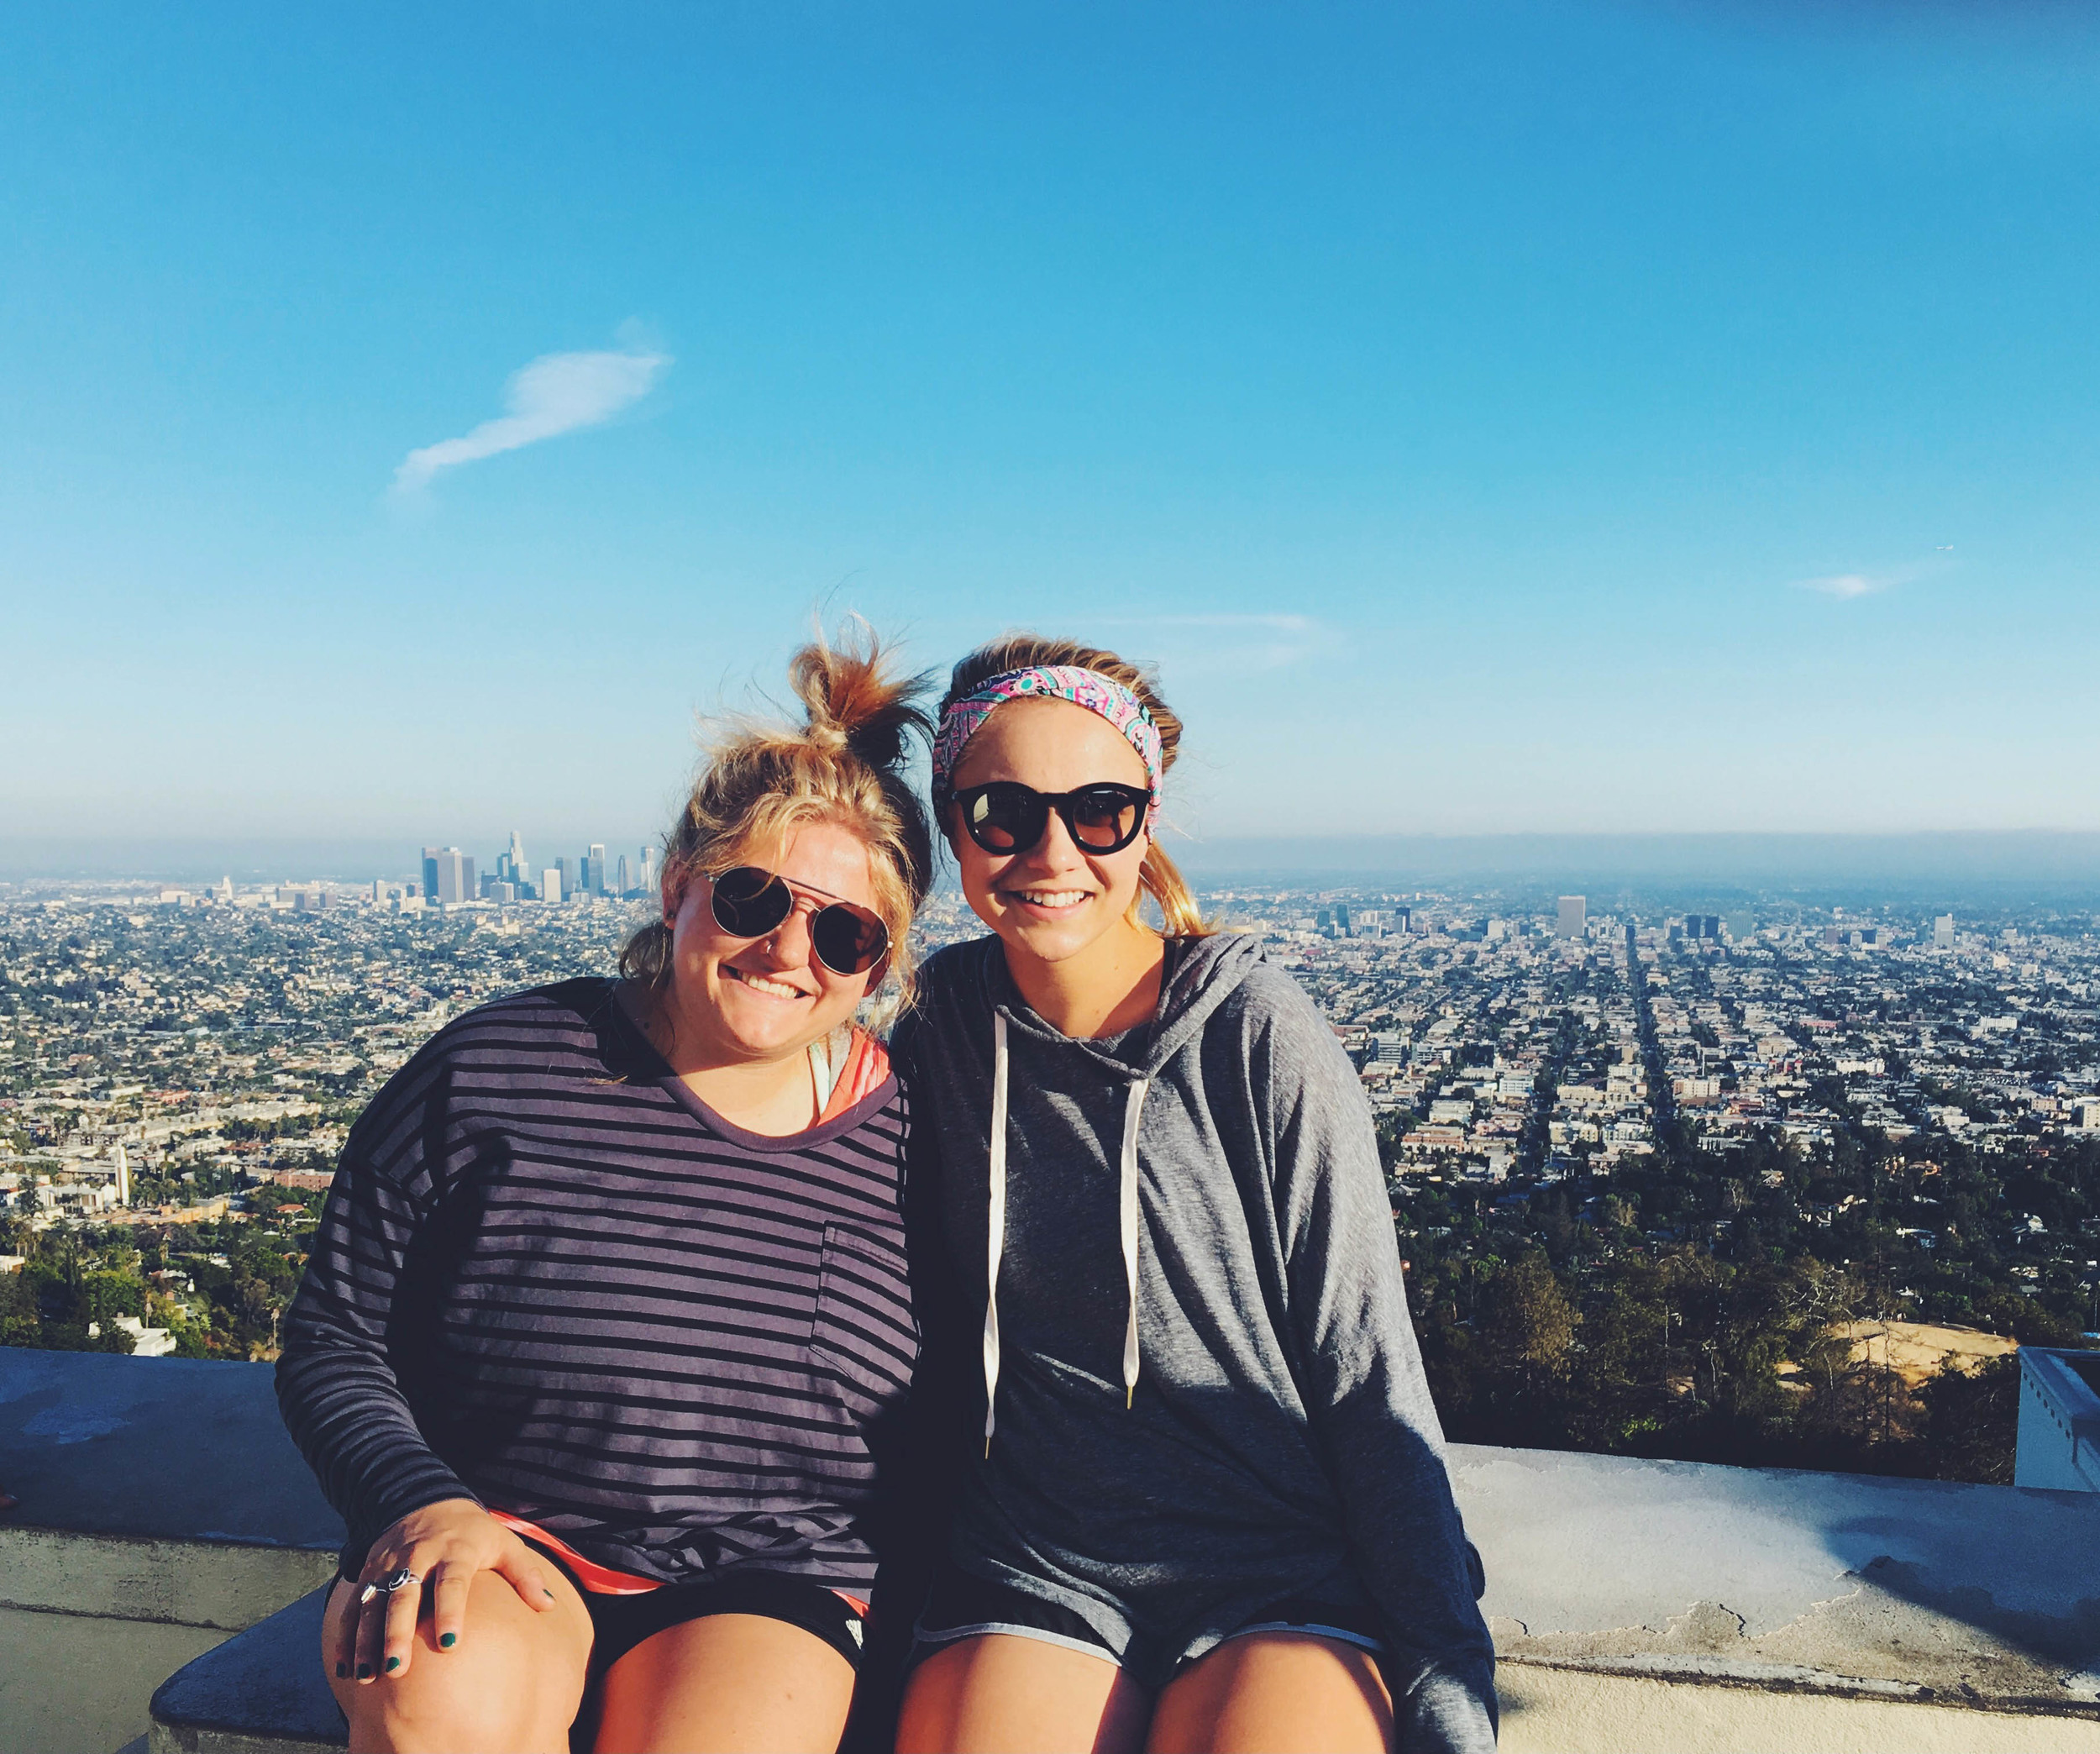 7.West Hollywood, Griffith Observatory   2800 E Observatory Rd, Los Angeles, CA 90027